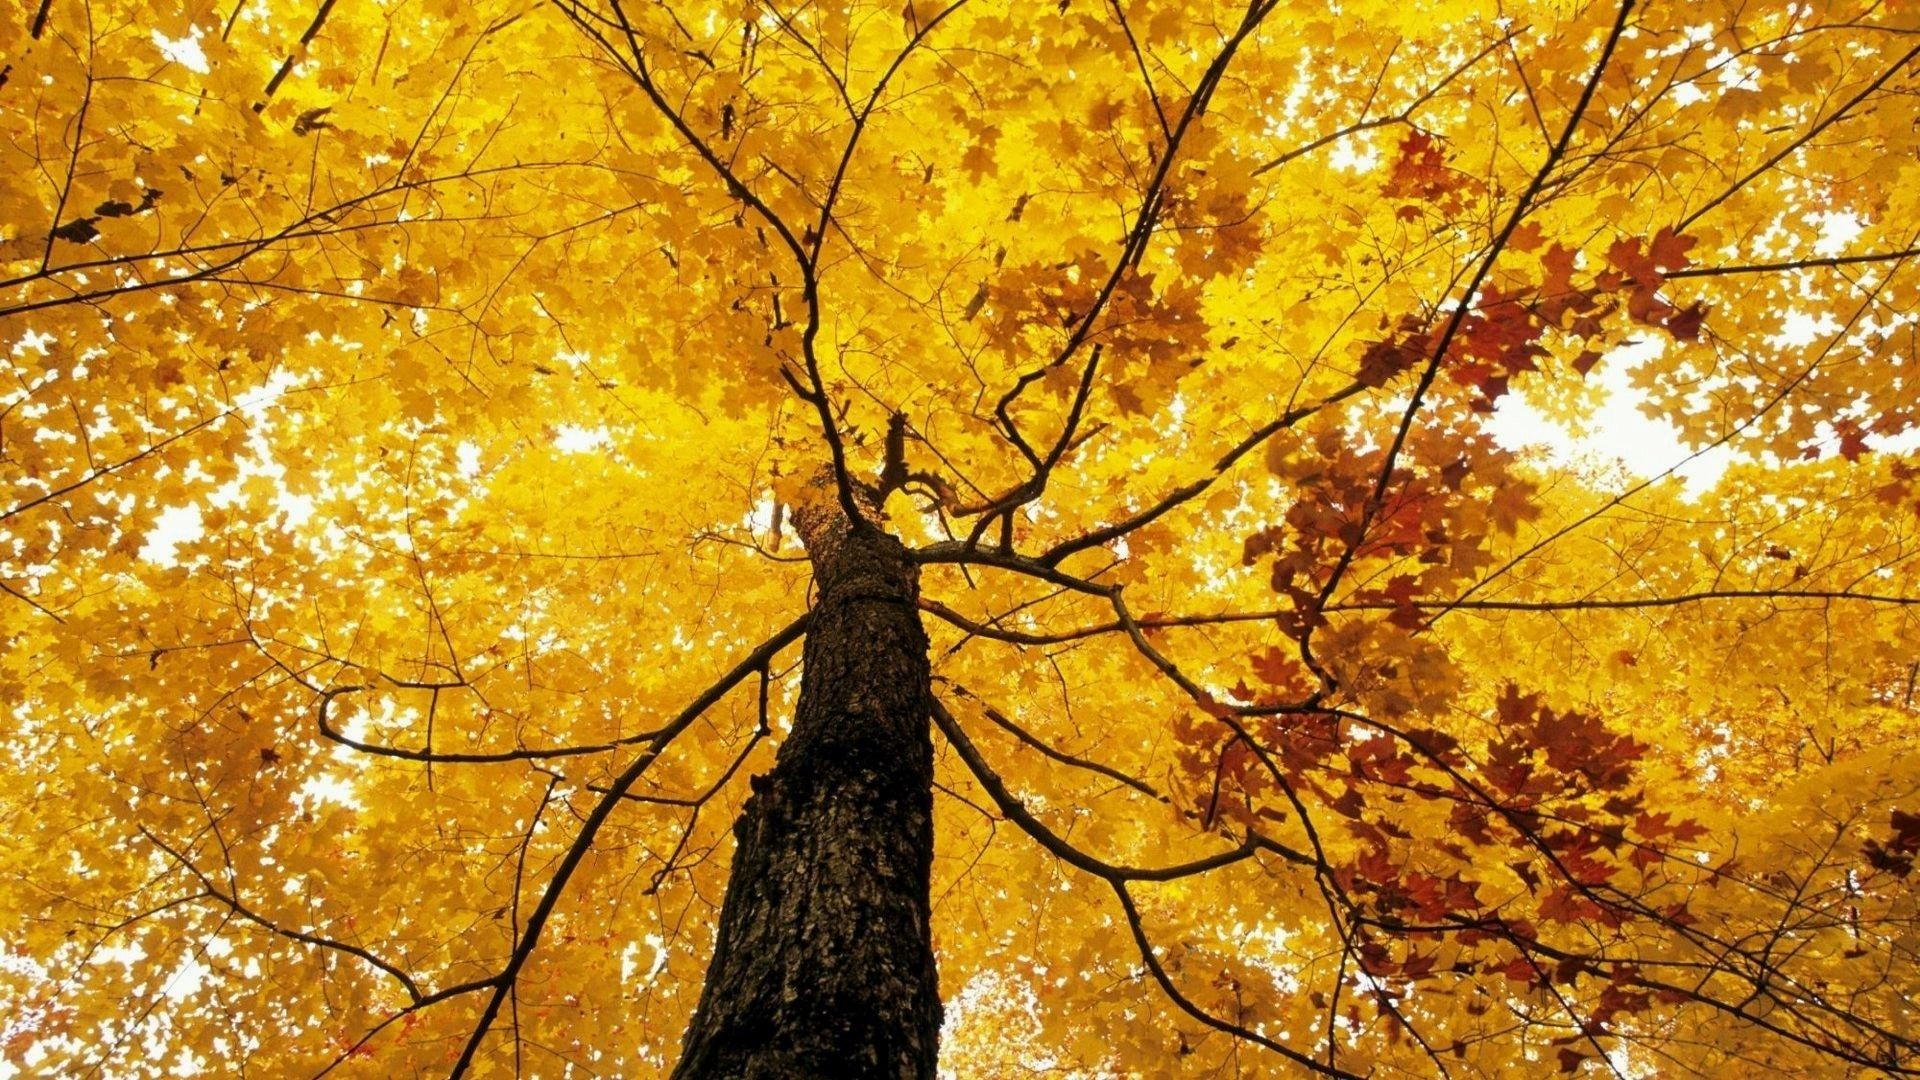 Fall Foliage Wallpaper For Computer Fall Foliage Wallpaper For Desktop 183 ① Wallpapertag